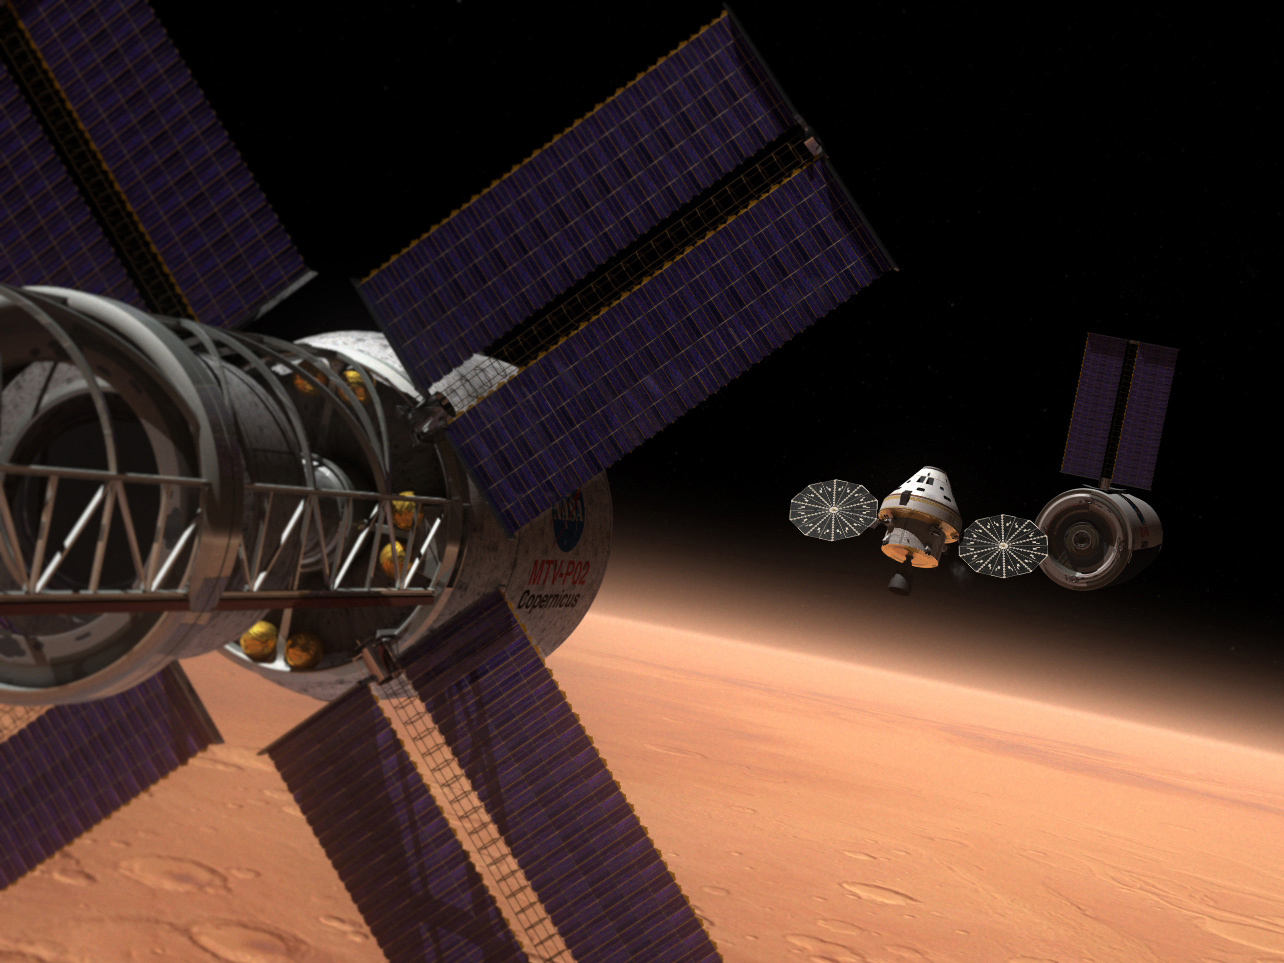 To Send Astronauts to Mars, NASA Needs New Strategy: Report